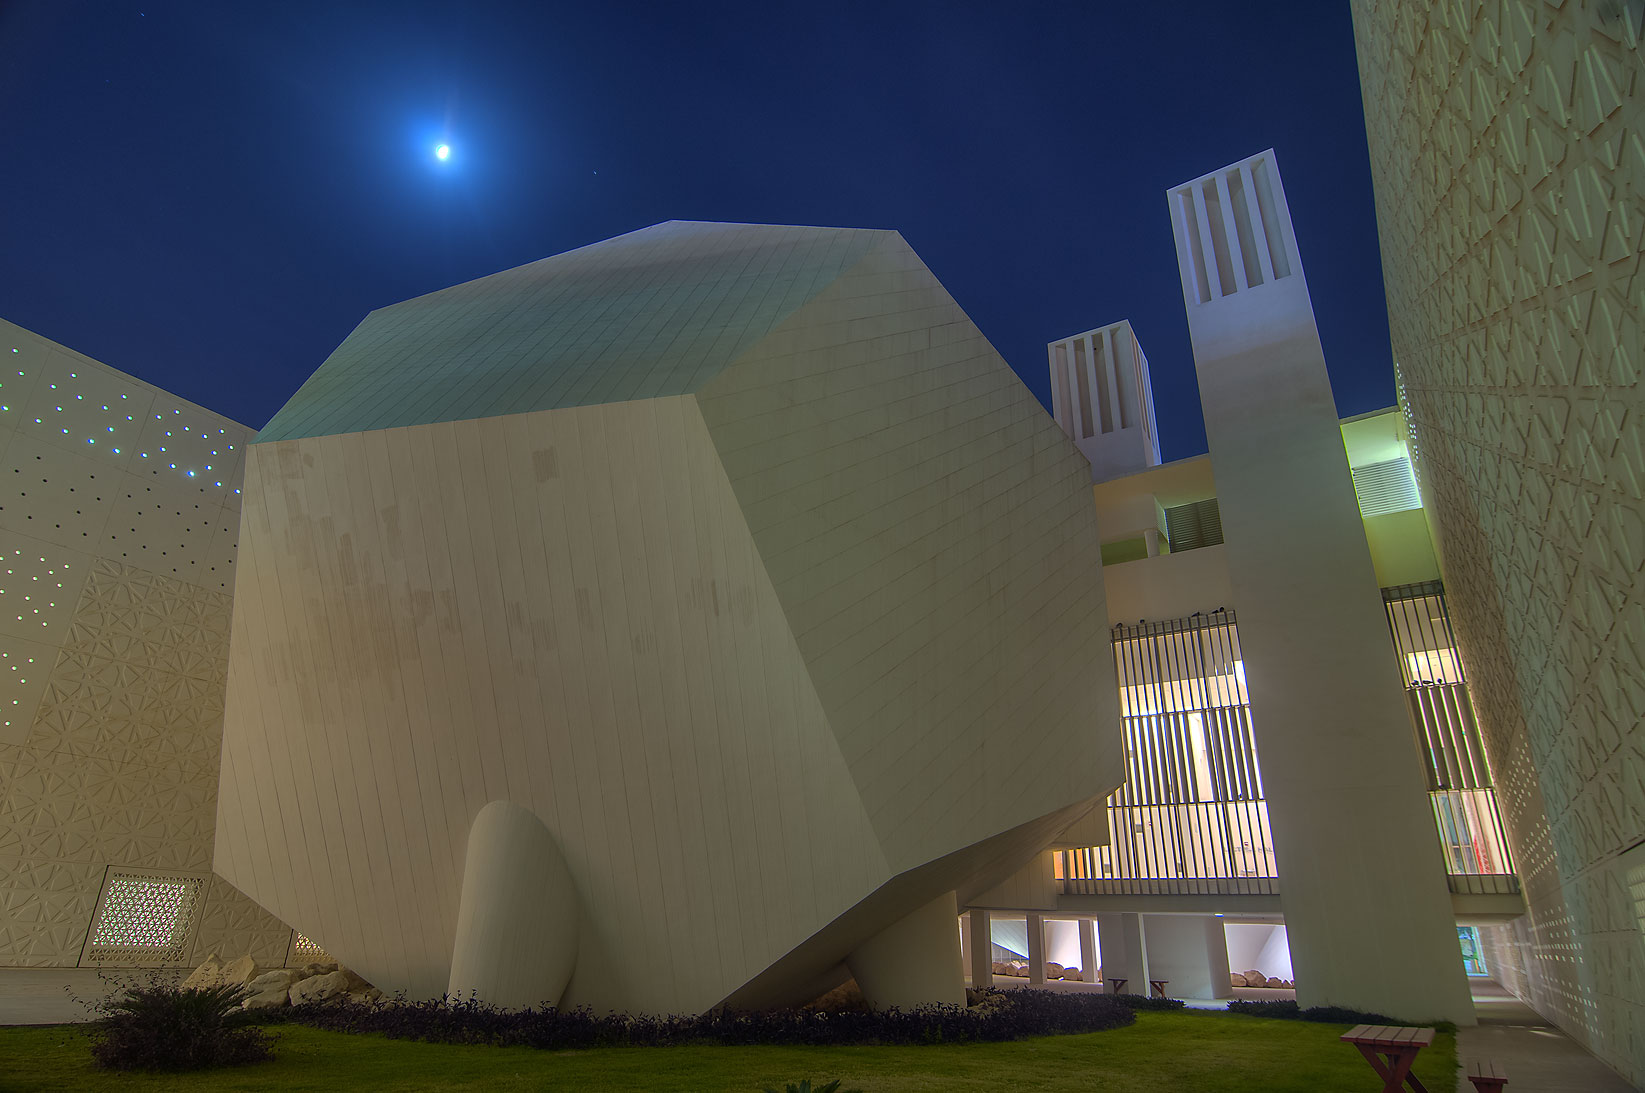 Dodecahedron lecture hall of Weill Cornell...City, Rayyan area. Doha, Qatar